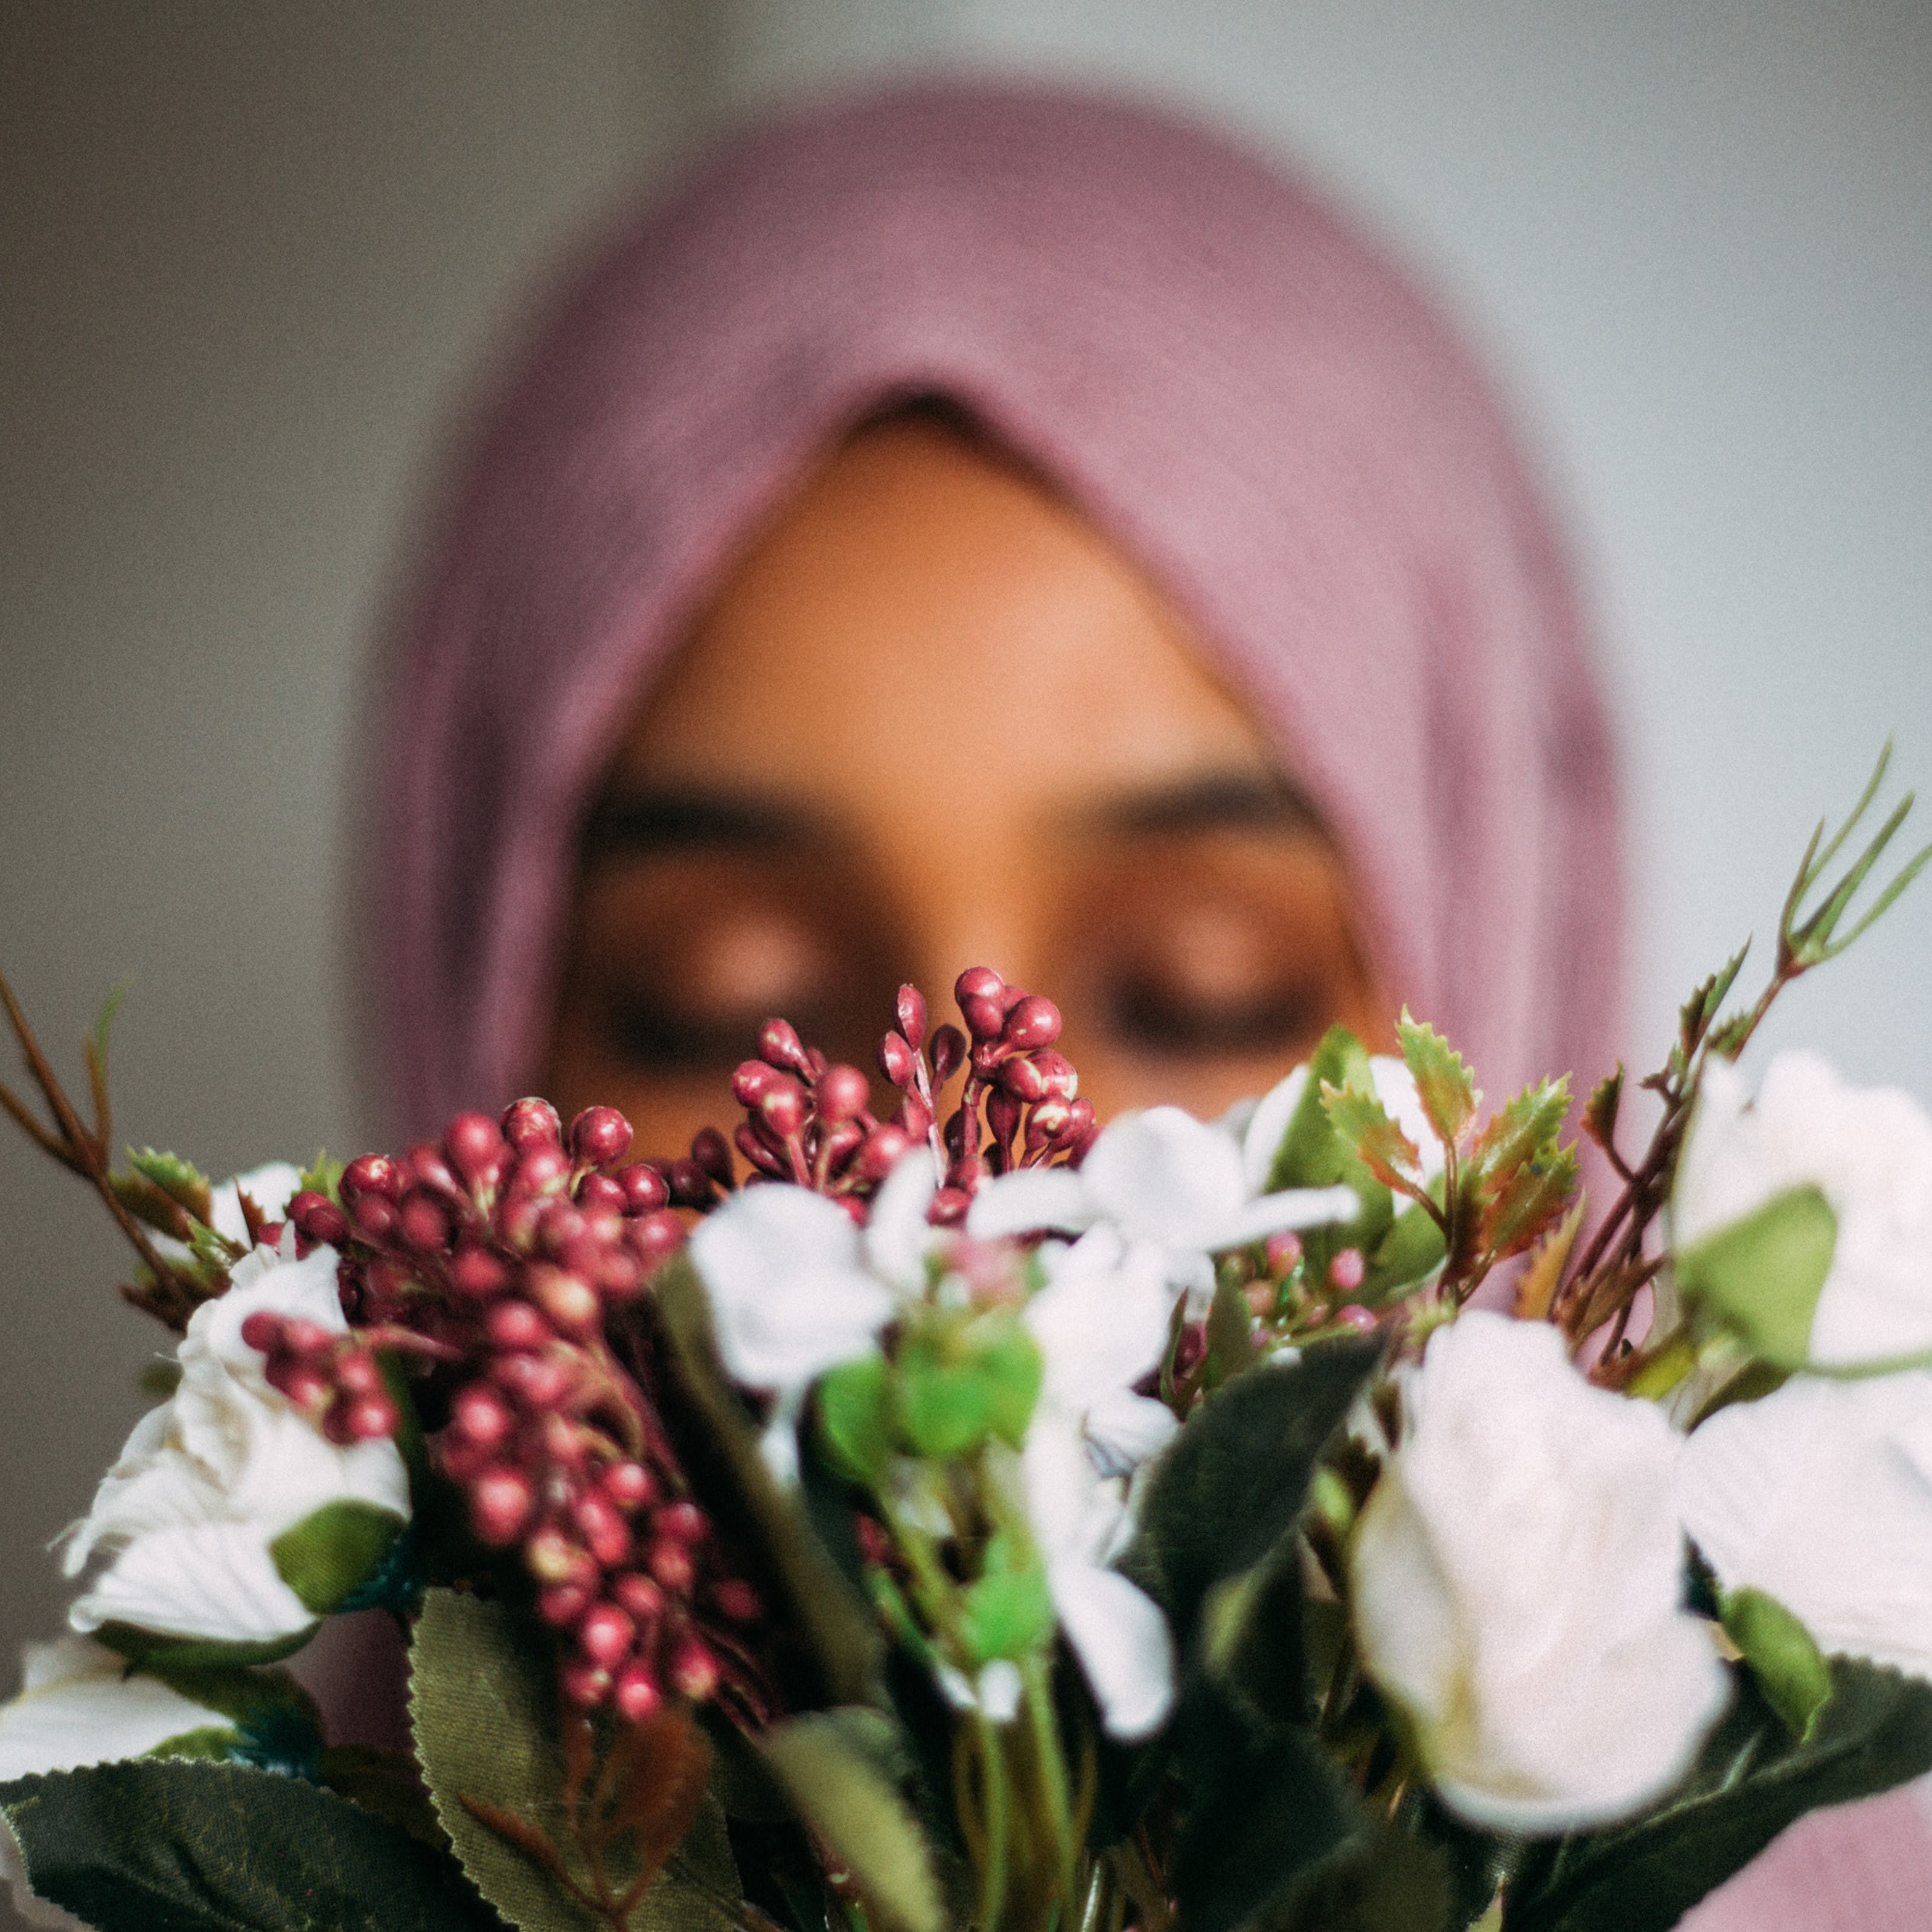 Photograph of a woman wearing a pink head scarf facing towards the camera. Her face is out of focus and partially obscured by a bunch of flowers.